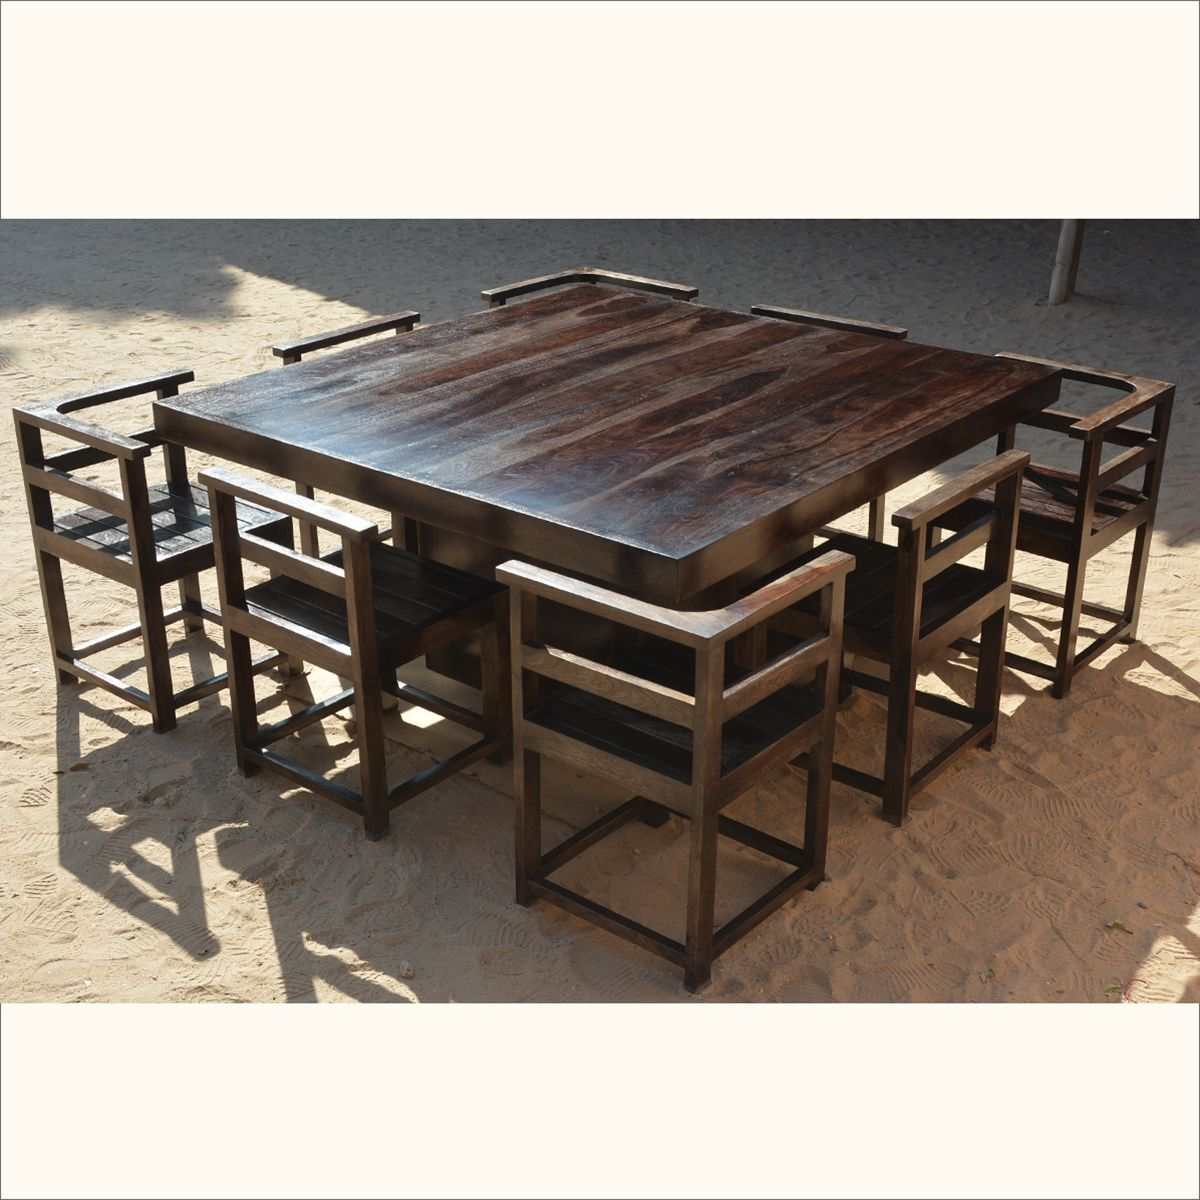 "8 Chair Square Dining Table: Modern Rustic Solid Wood 64"" Square Pedestal Dining Table & 8 Chairs"